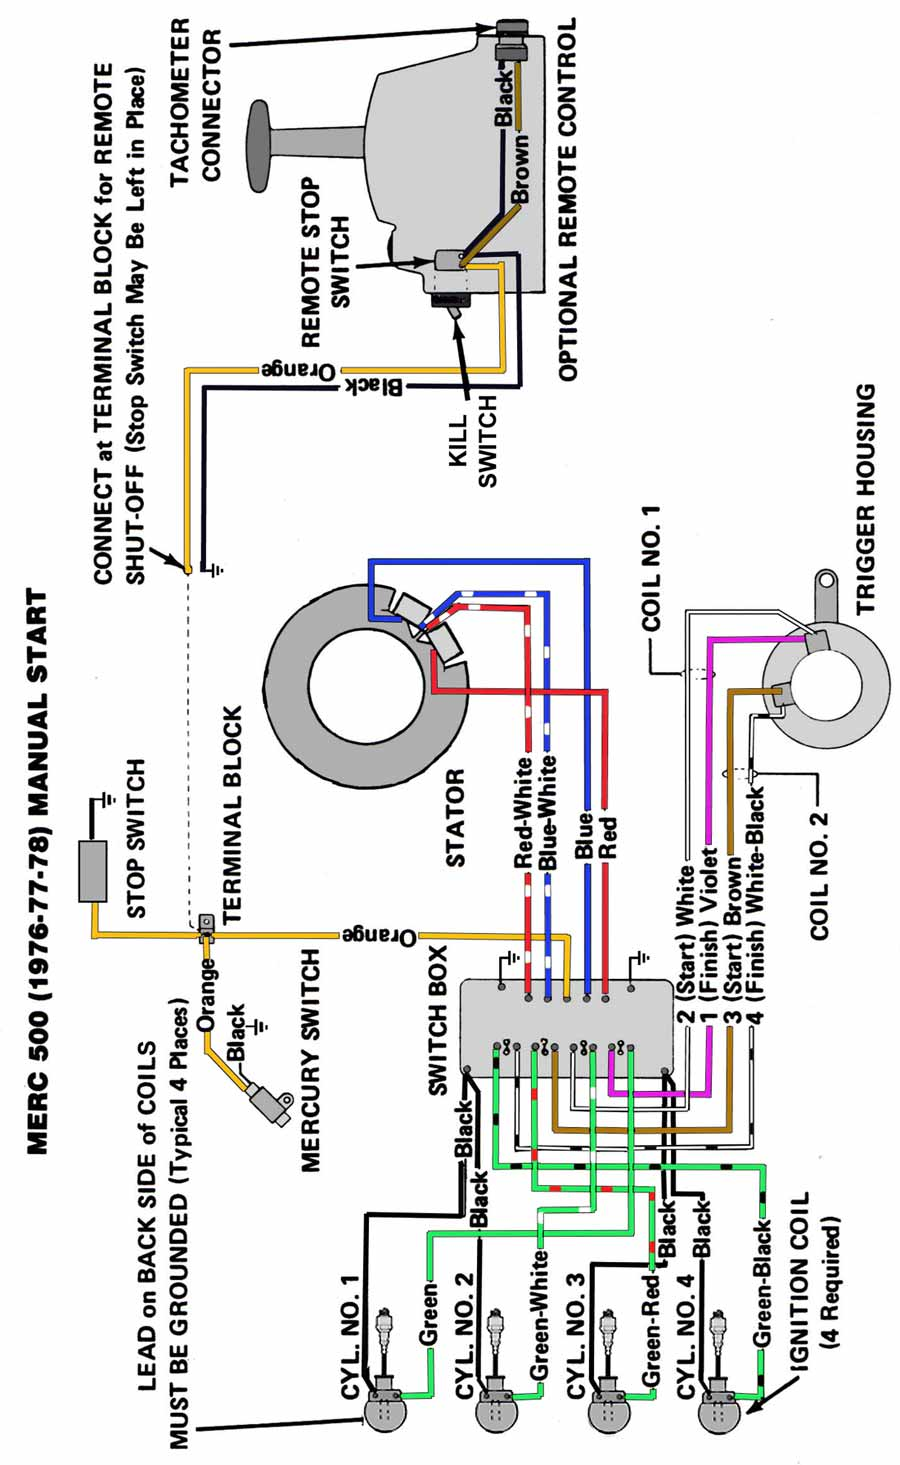 hight resolution of mercury outboard wiring diagrams mastertech marin rh maxrules com 1978 mercury outboard wiring diagram mercury 40 outboard engine wiring diagram